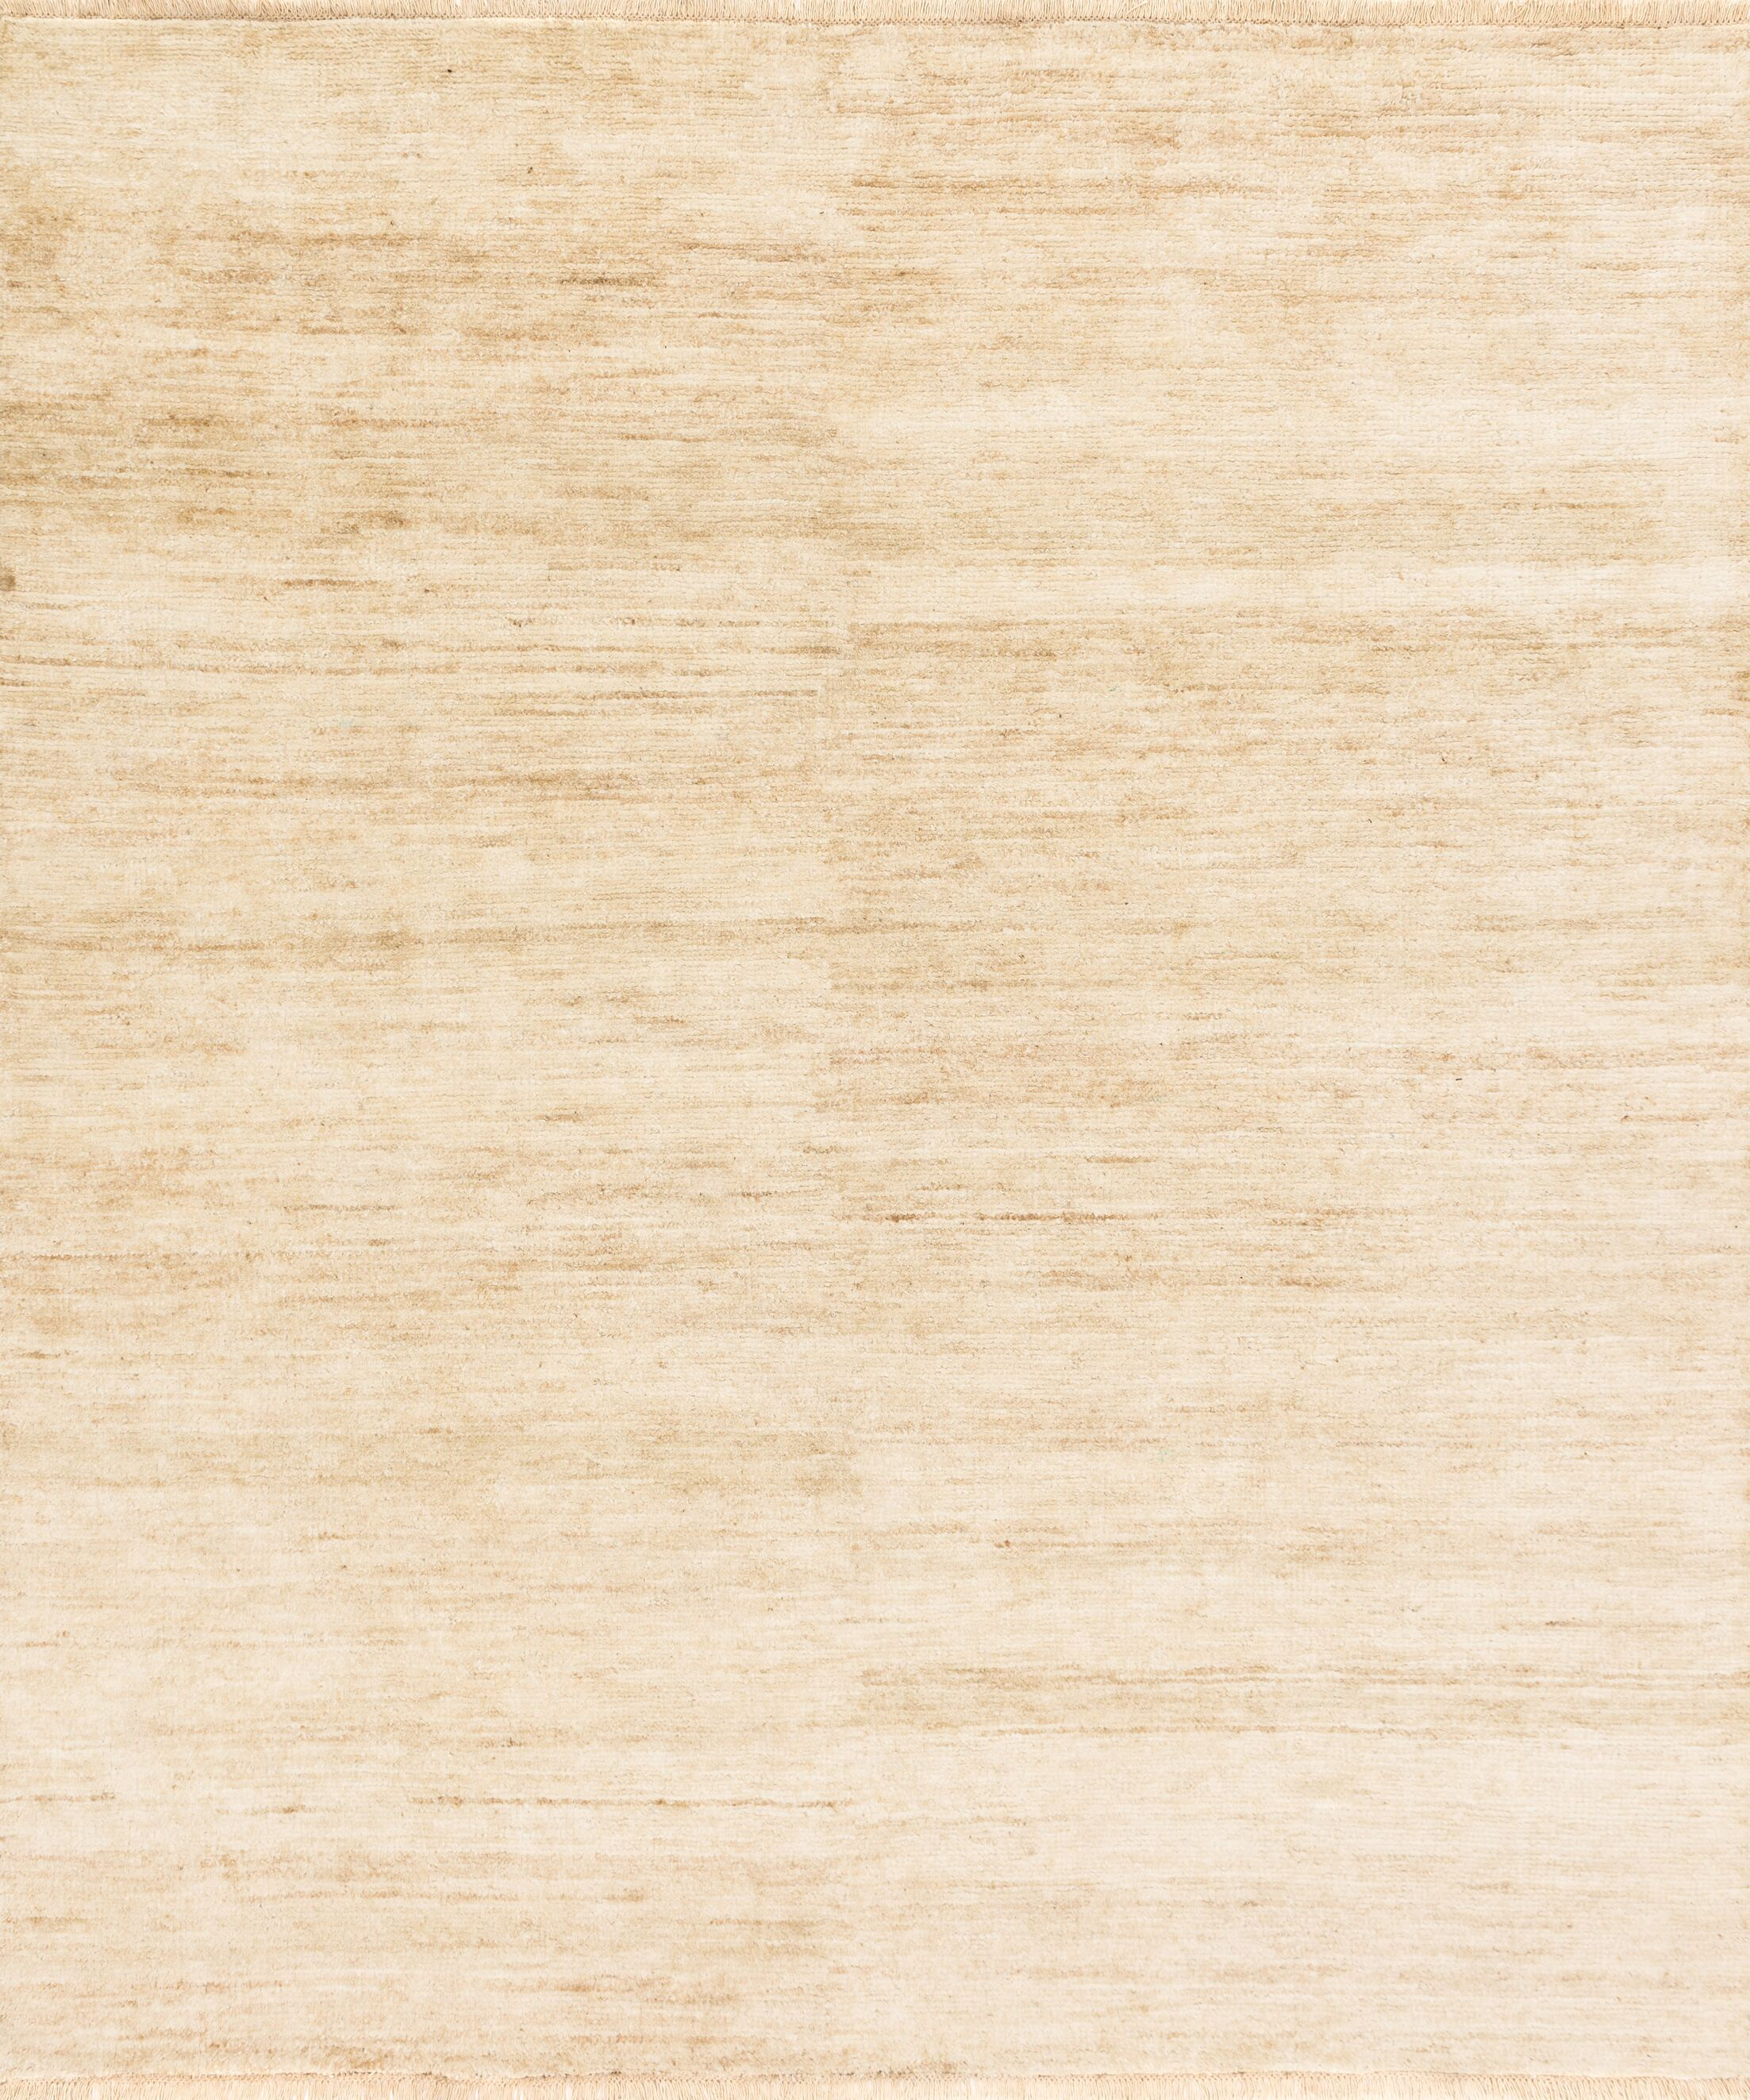 Moiseiev Hand-Knotted Beige Area Rug Rug Size: Rectangle 5'6